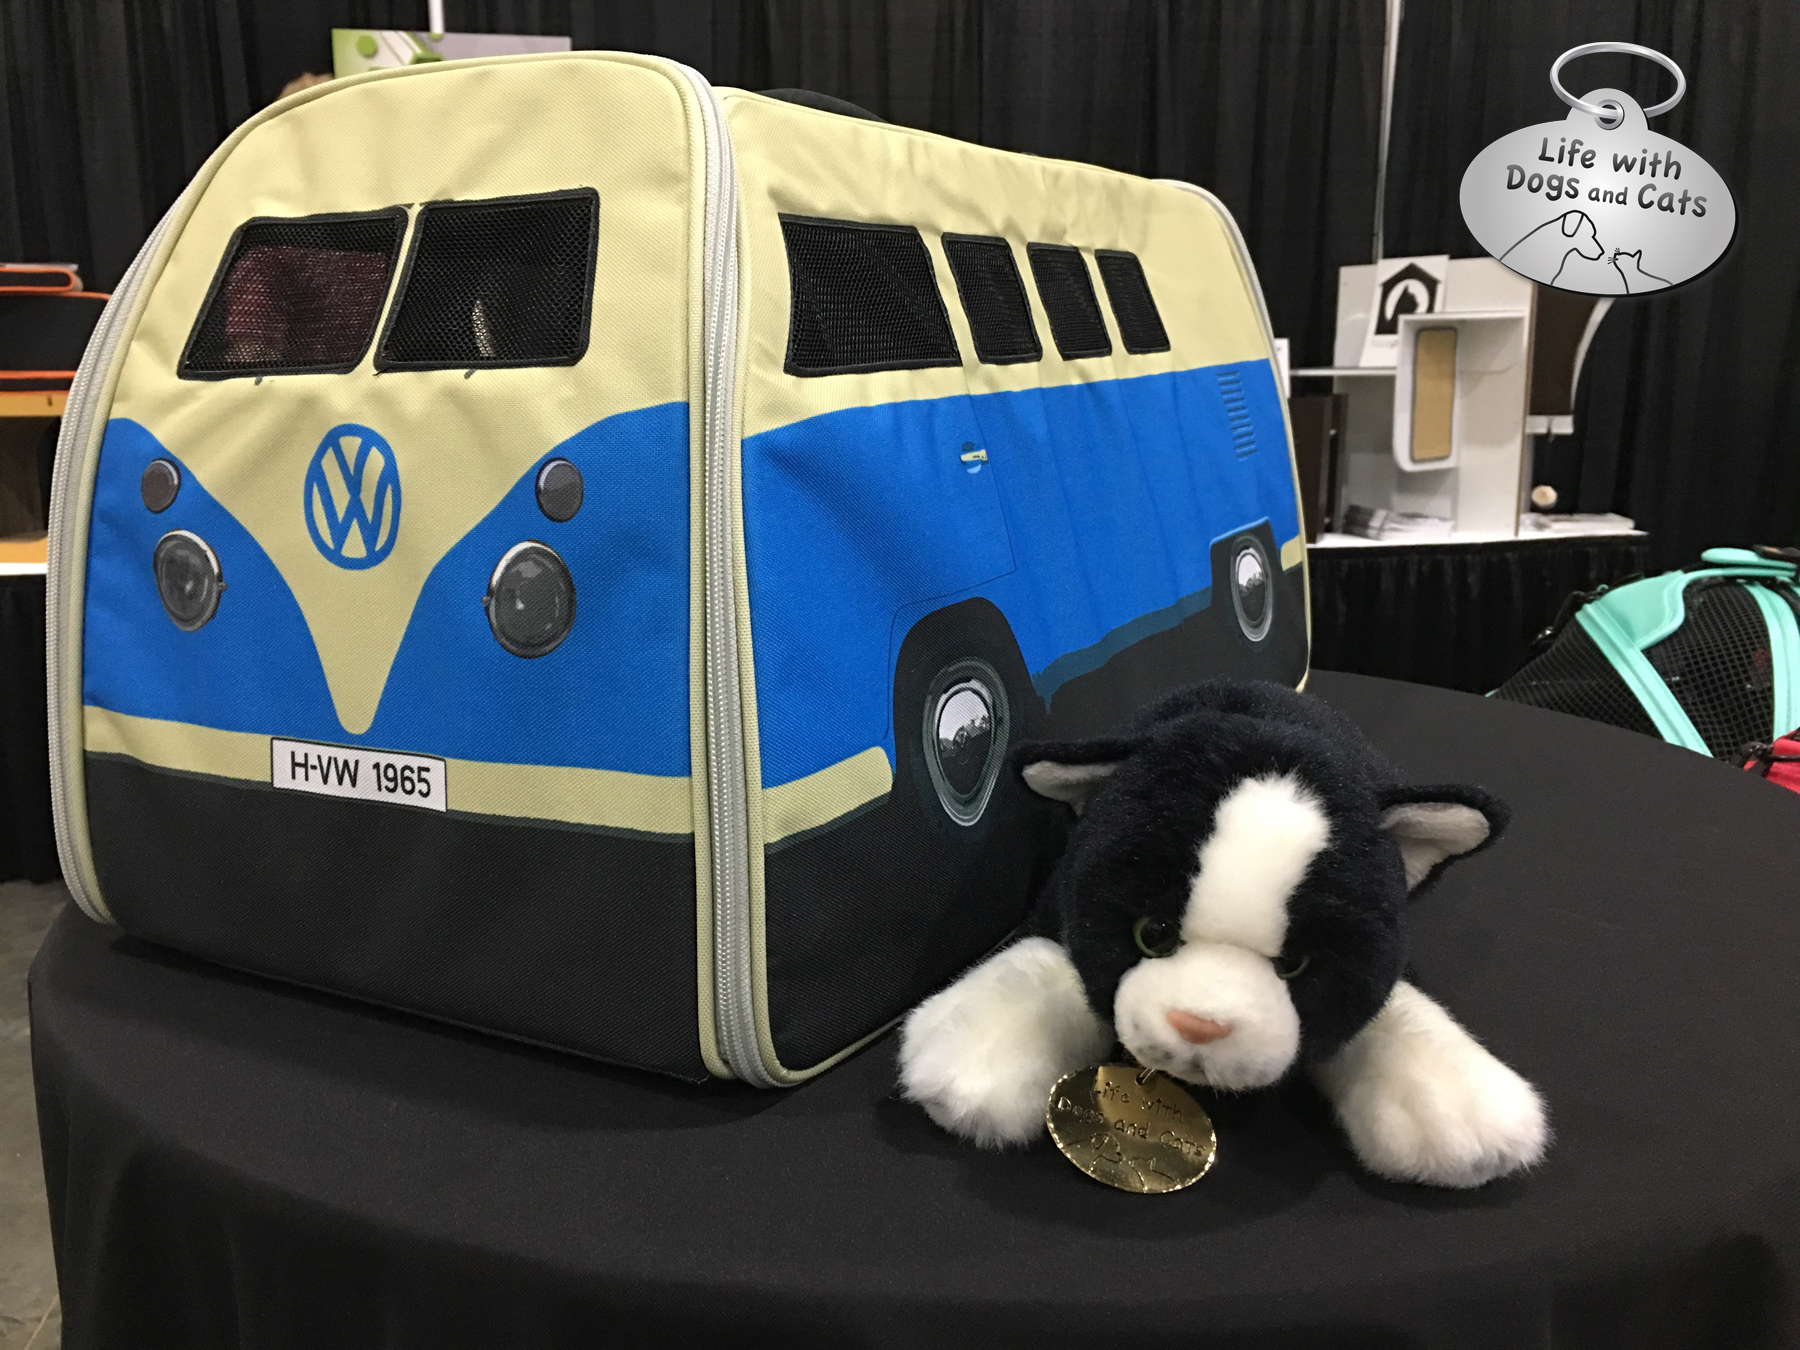 Camper Van from Monster Factory